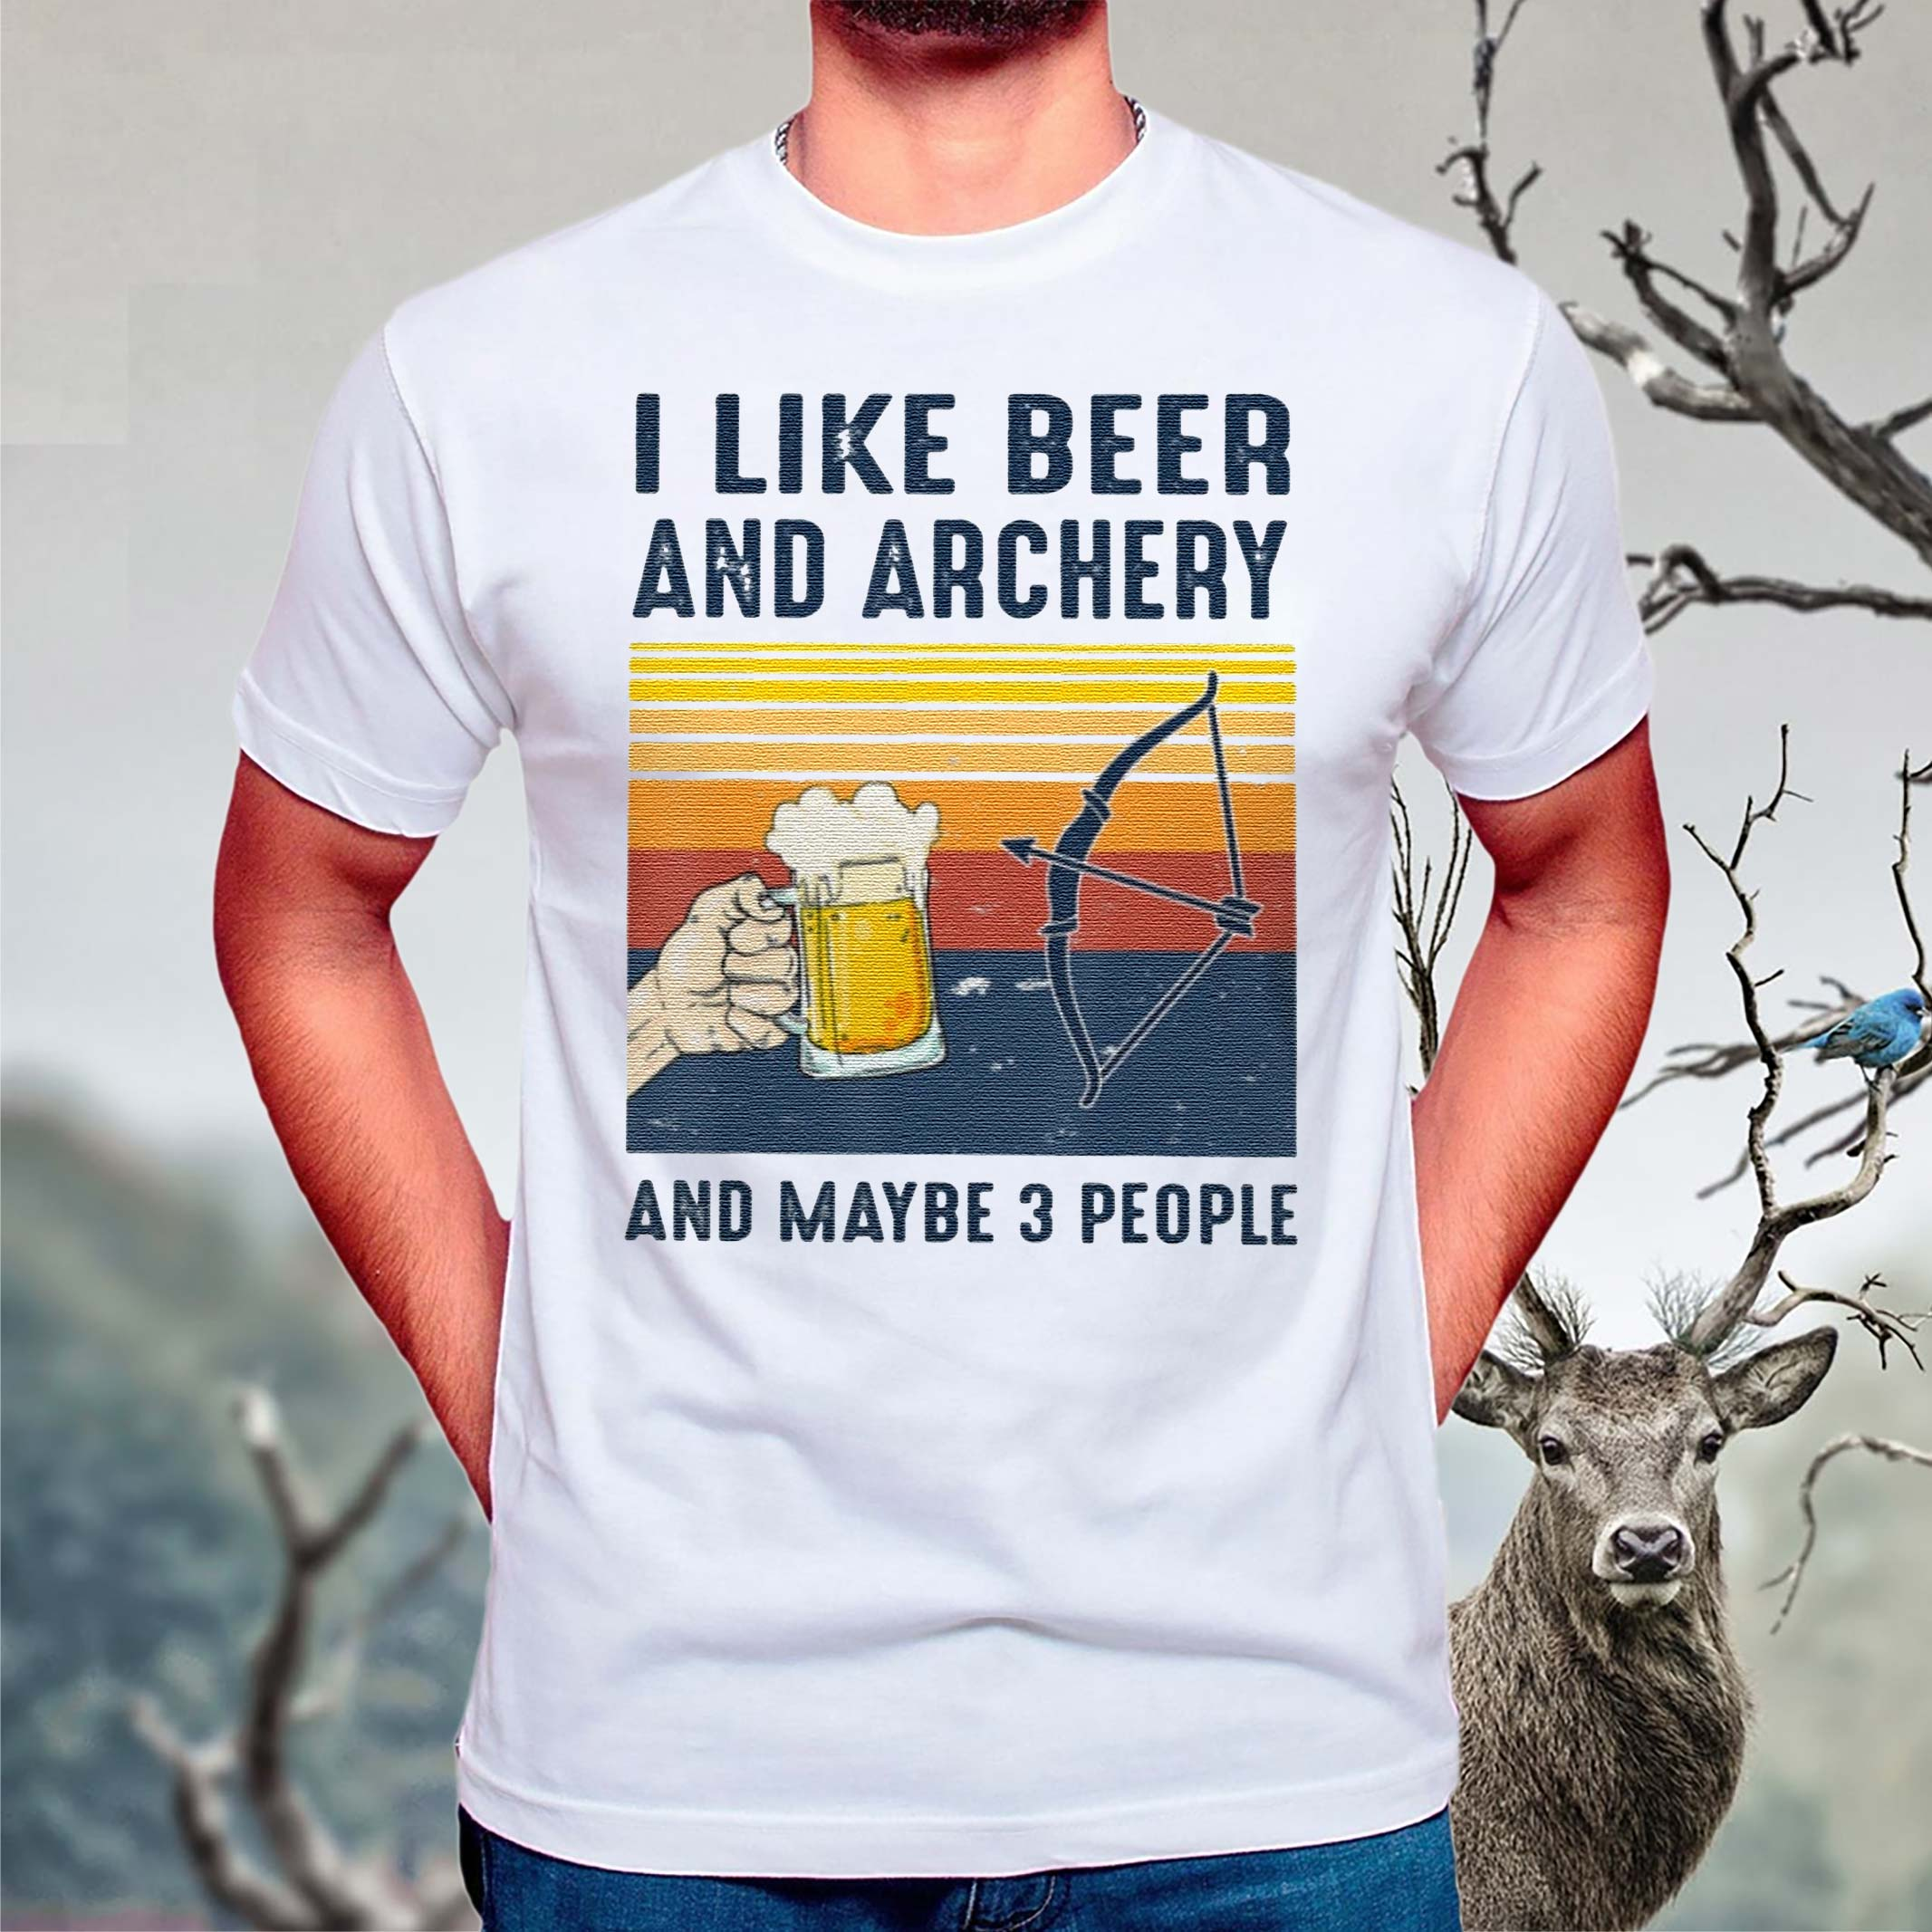 I-like-Beer-Archery-maybe-3-people-Shirt